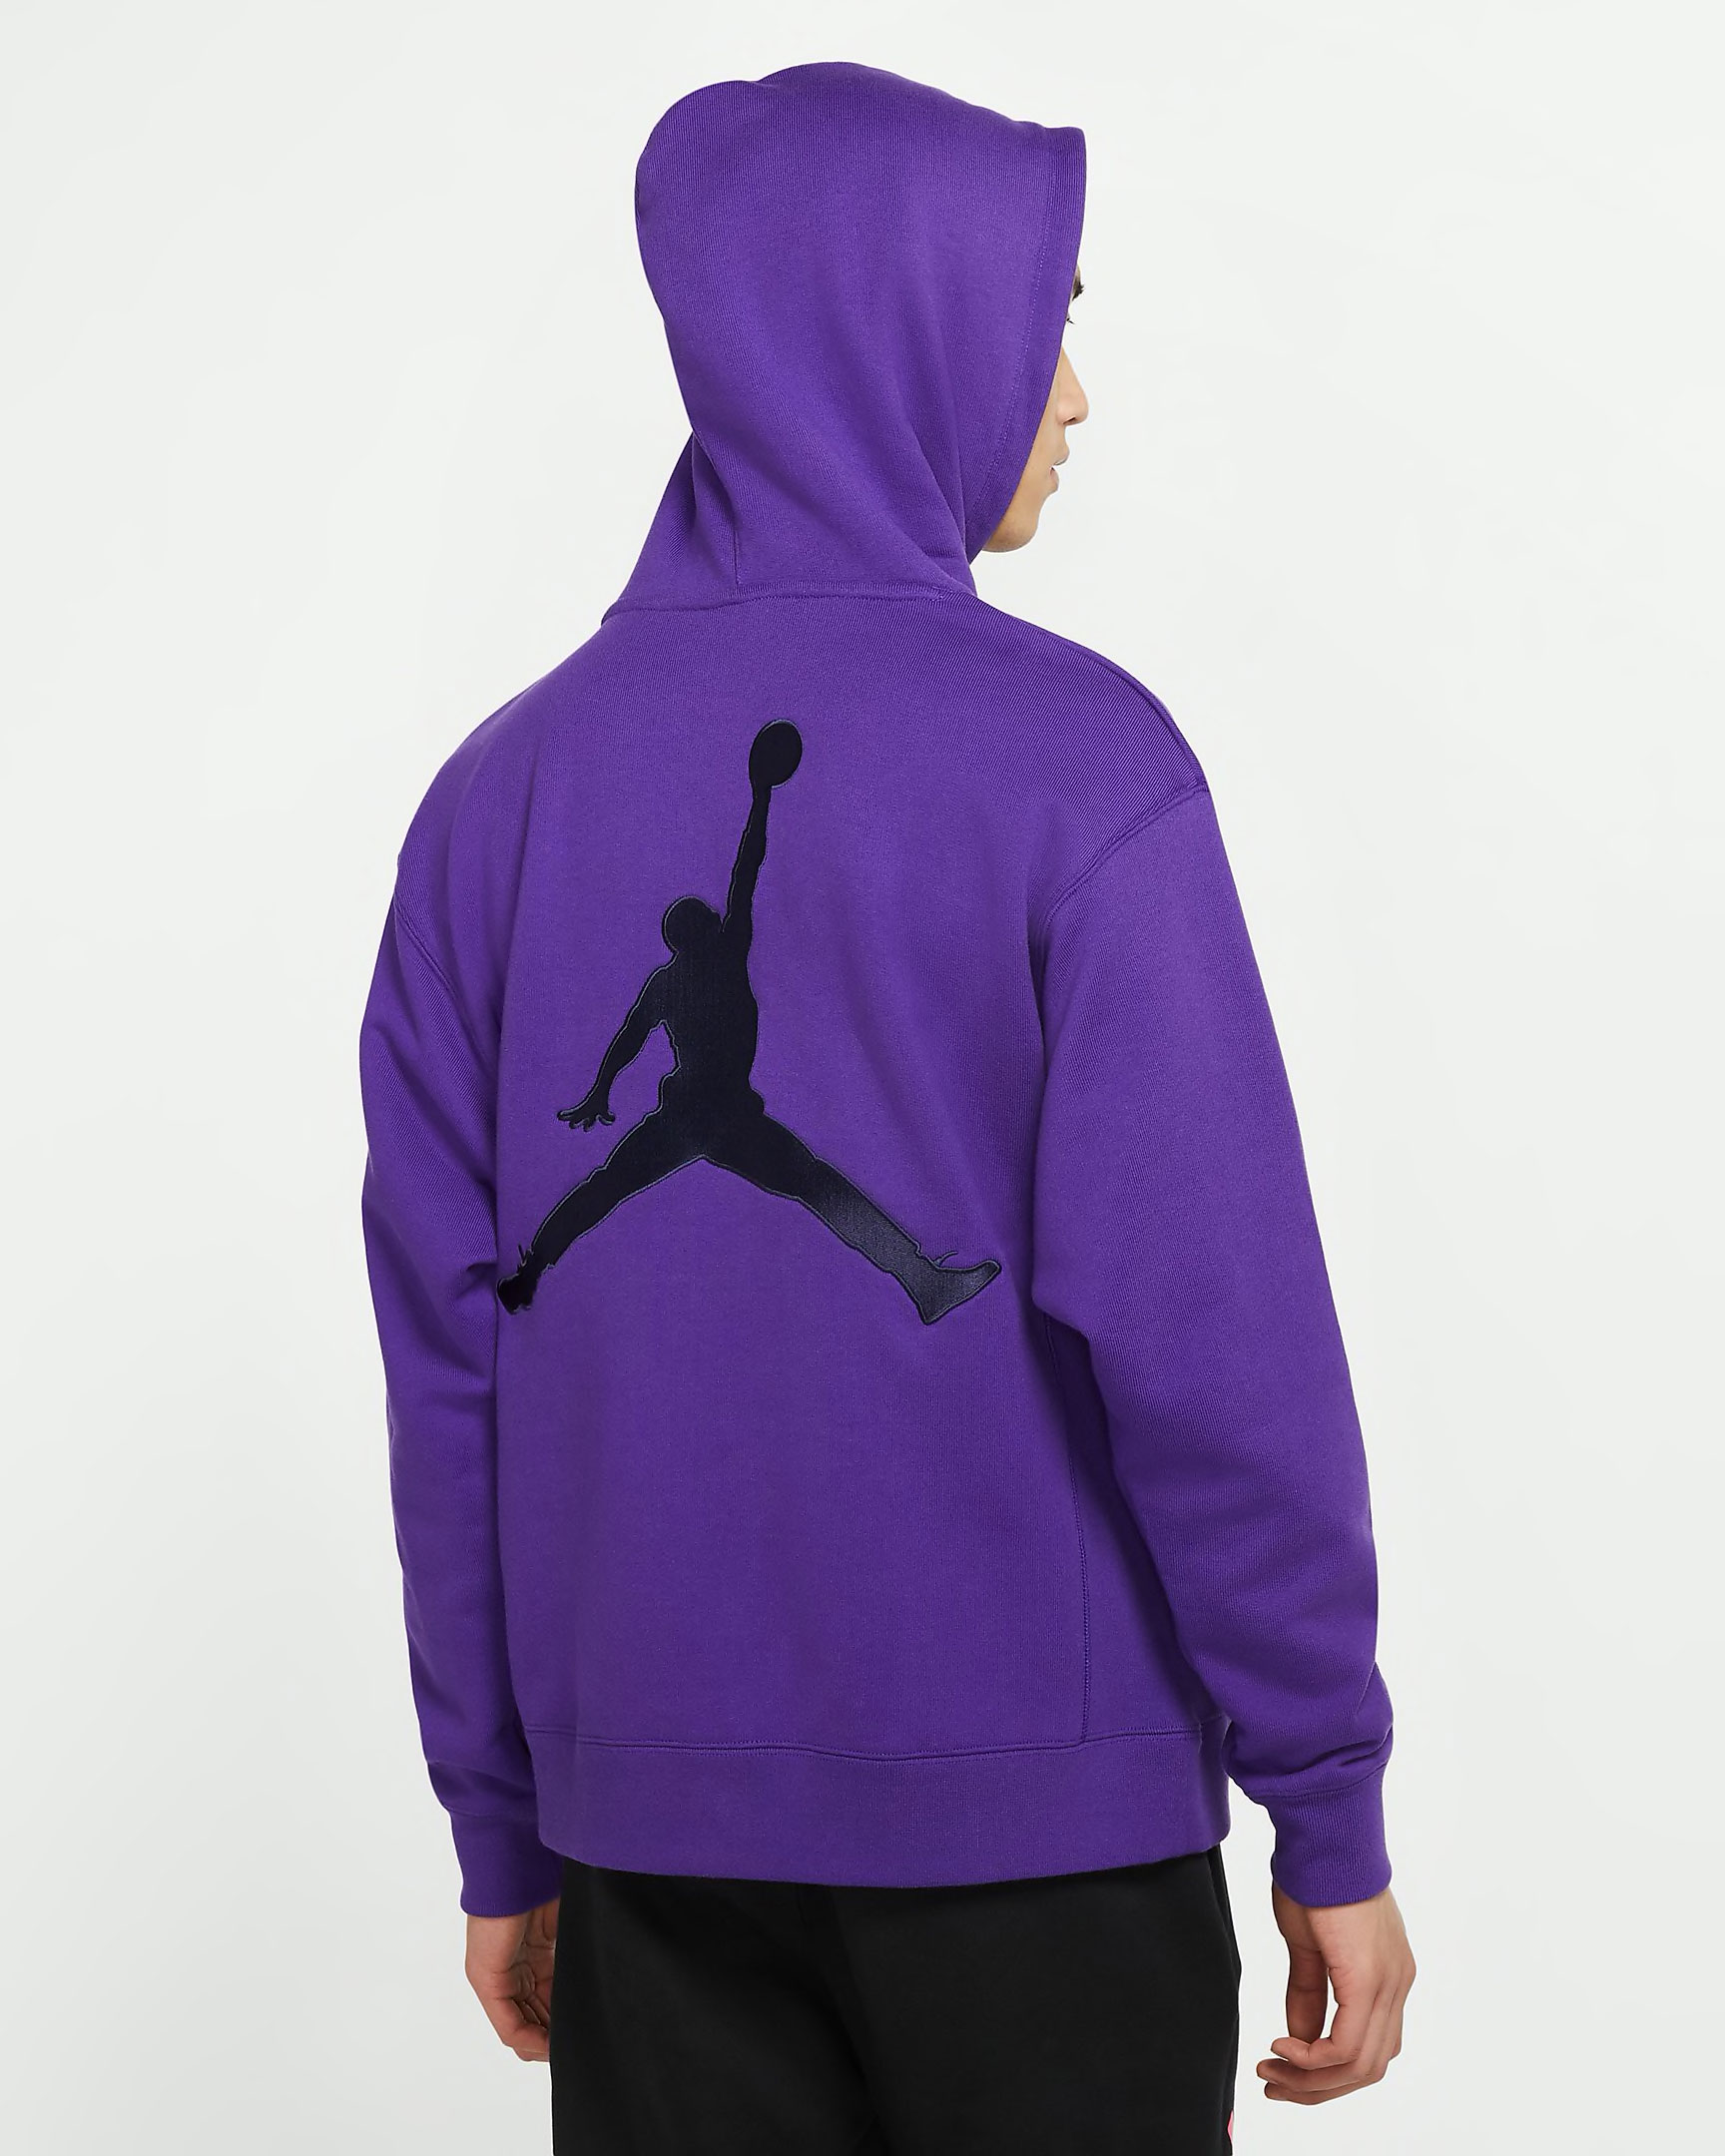 air-jordan-1-high-court-purple-hoodie-2